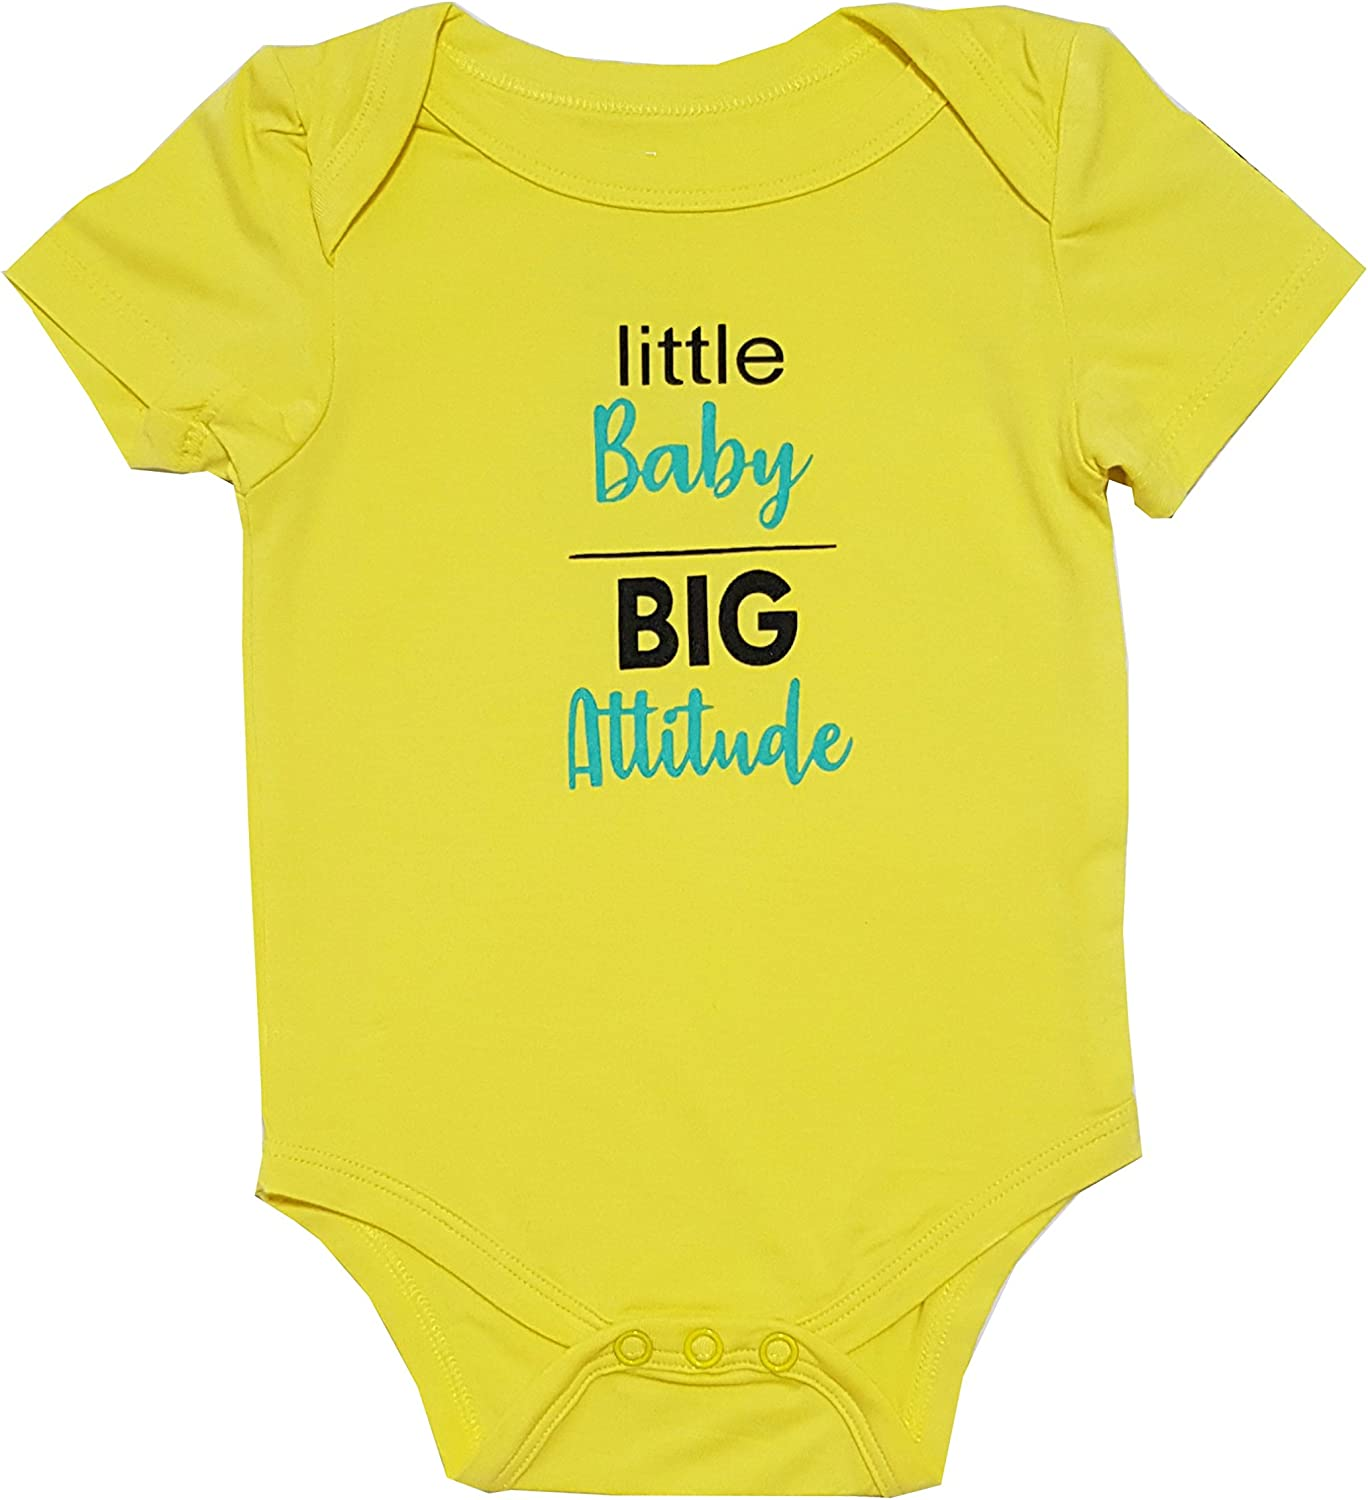 Humanity Baby Gift Unisex Cute Onesies\u00ae Be Kind Be Kind Onesie Baby Clothes with Sayings Cute Baby Clothes Inspirational Baby Gift